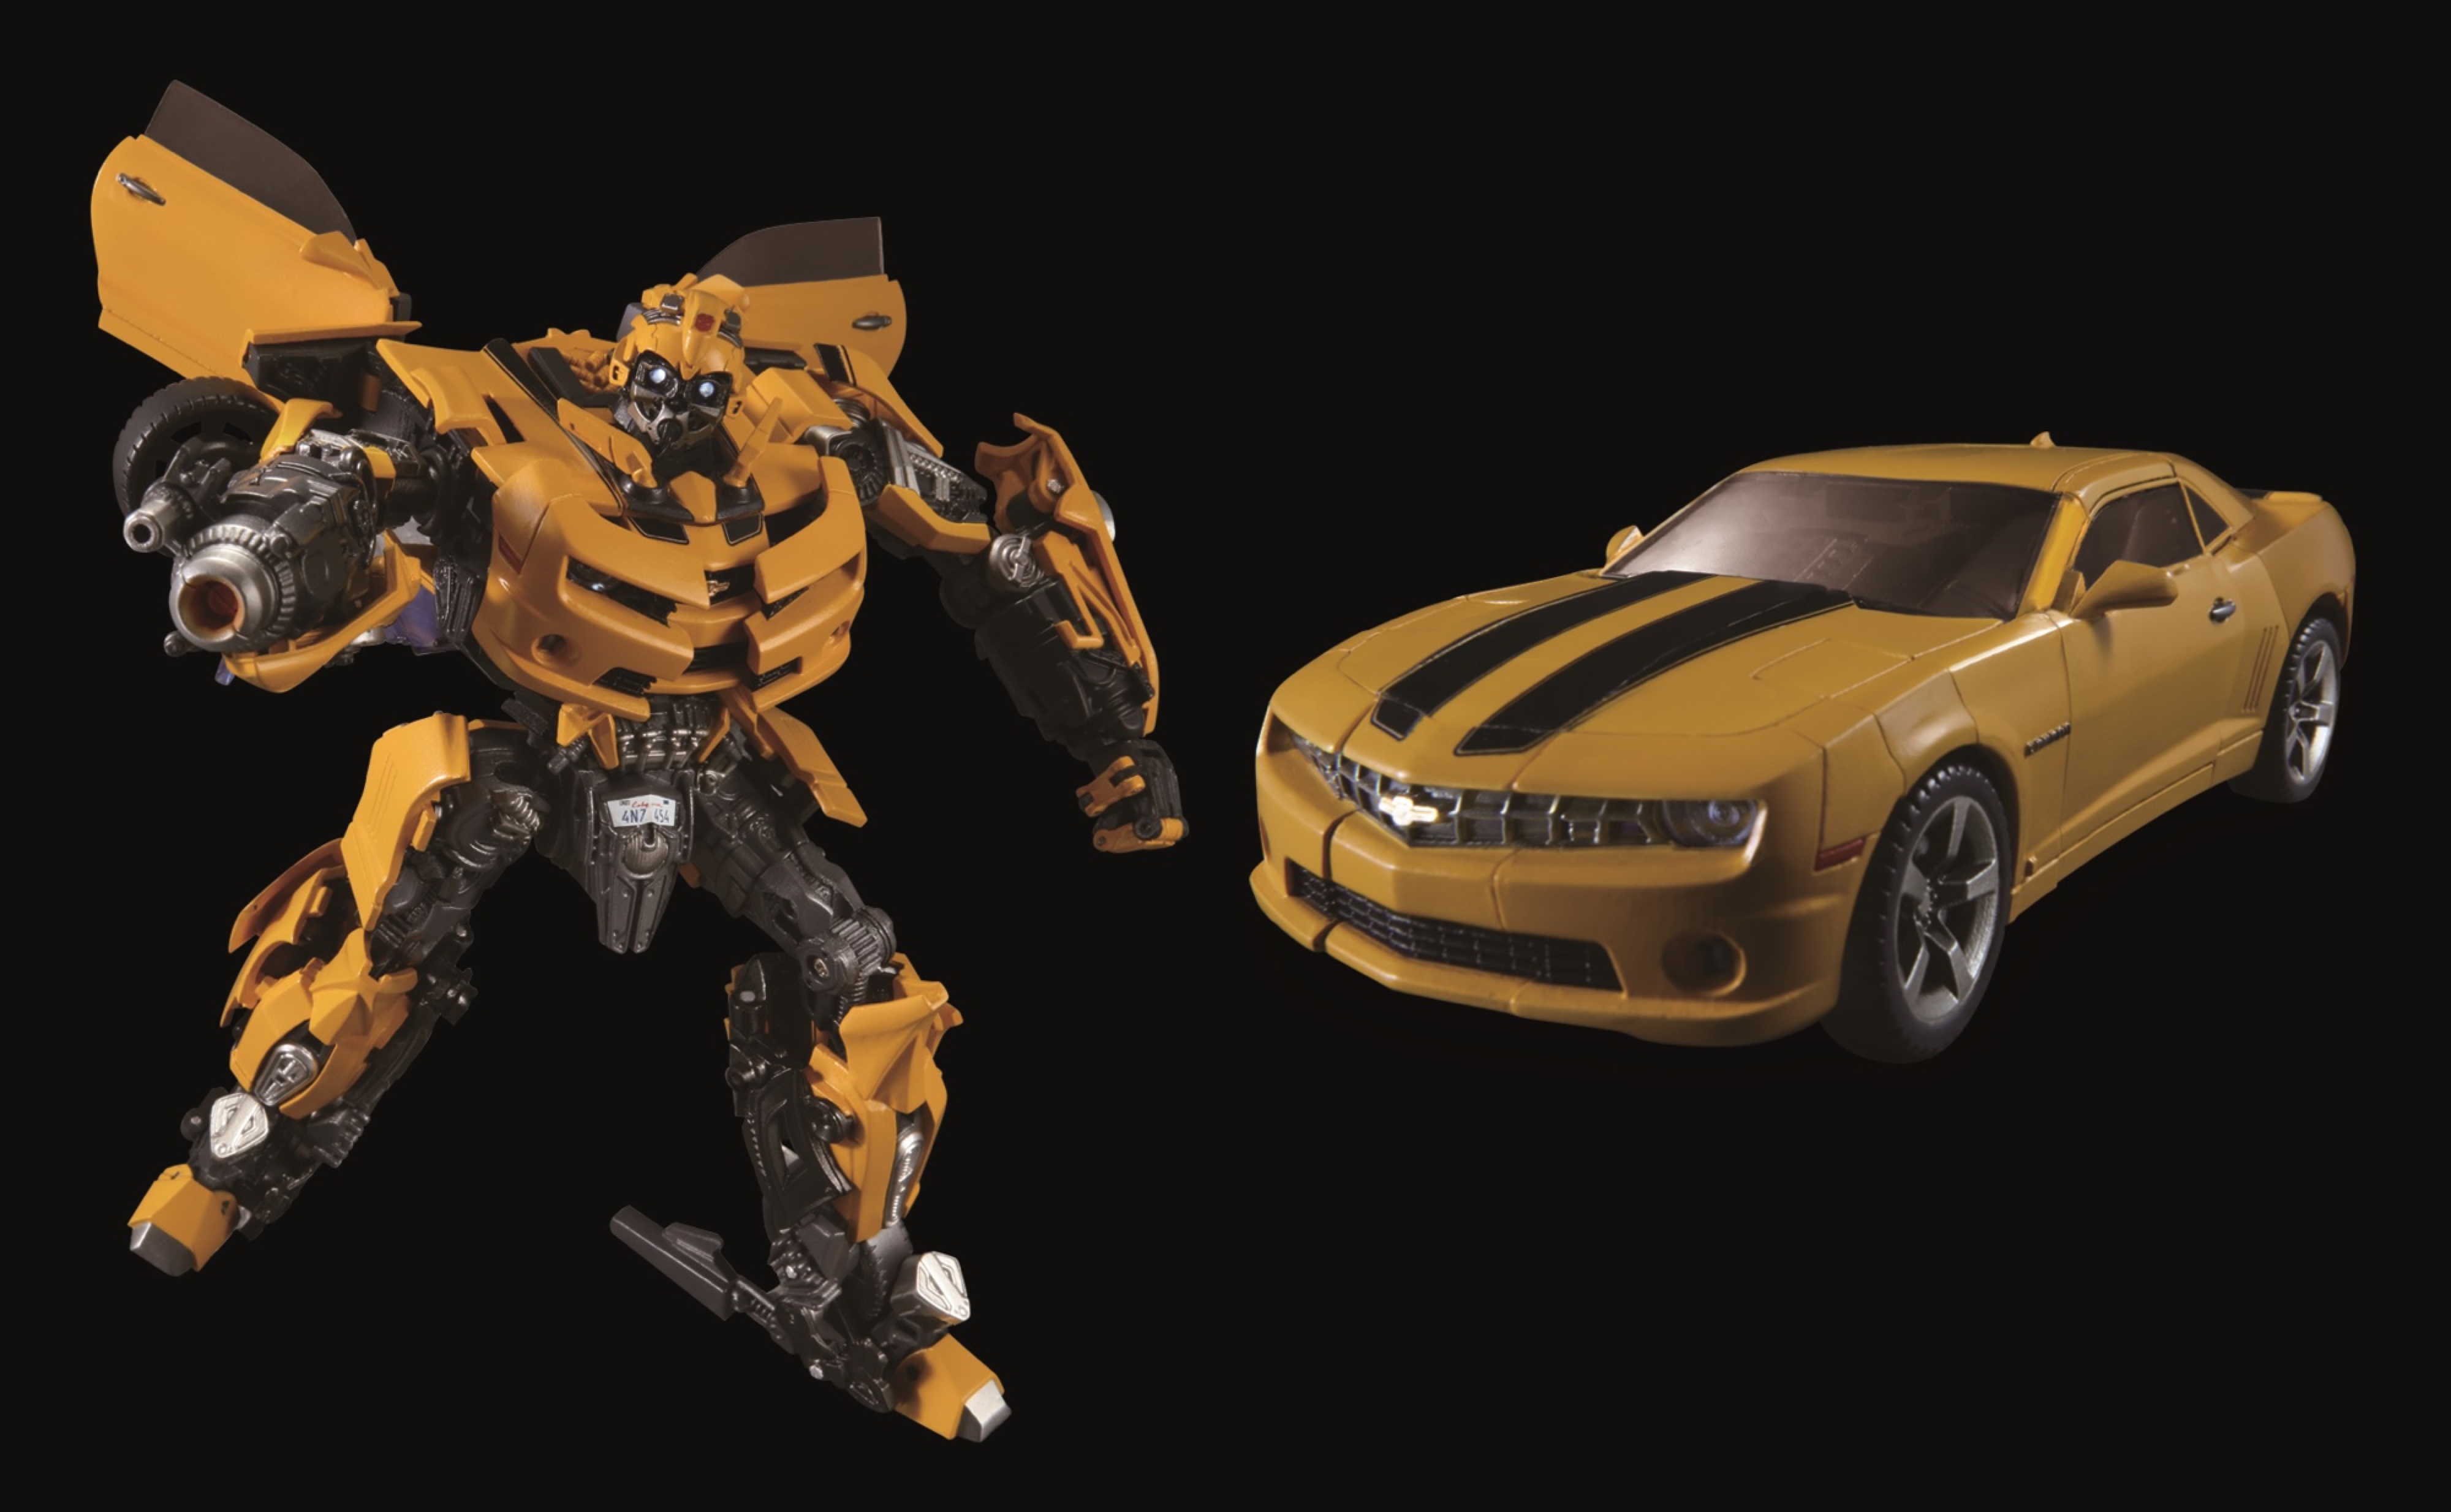 Cool stuff disneyland batman ratatouille transformers star wars the burbs film - Images of bumblebee from transformers ...